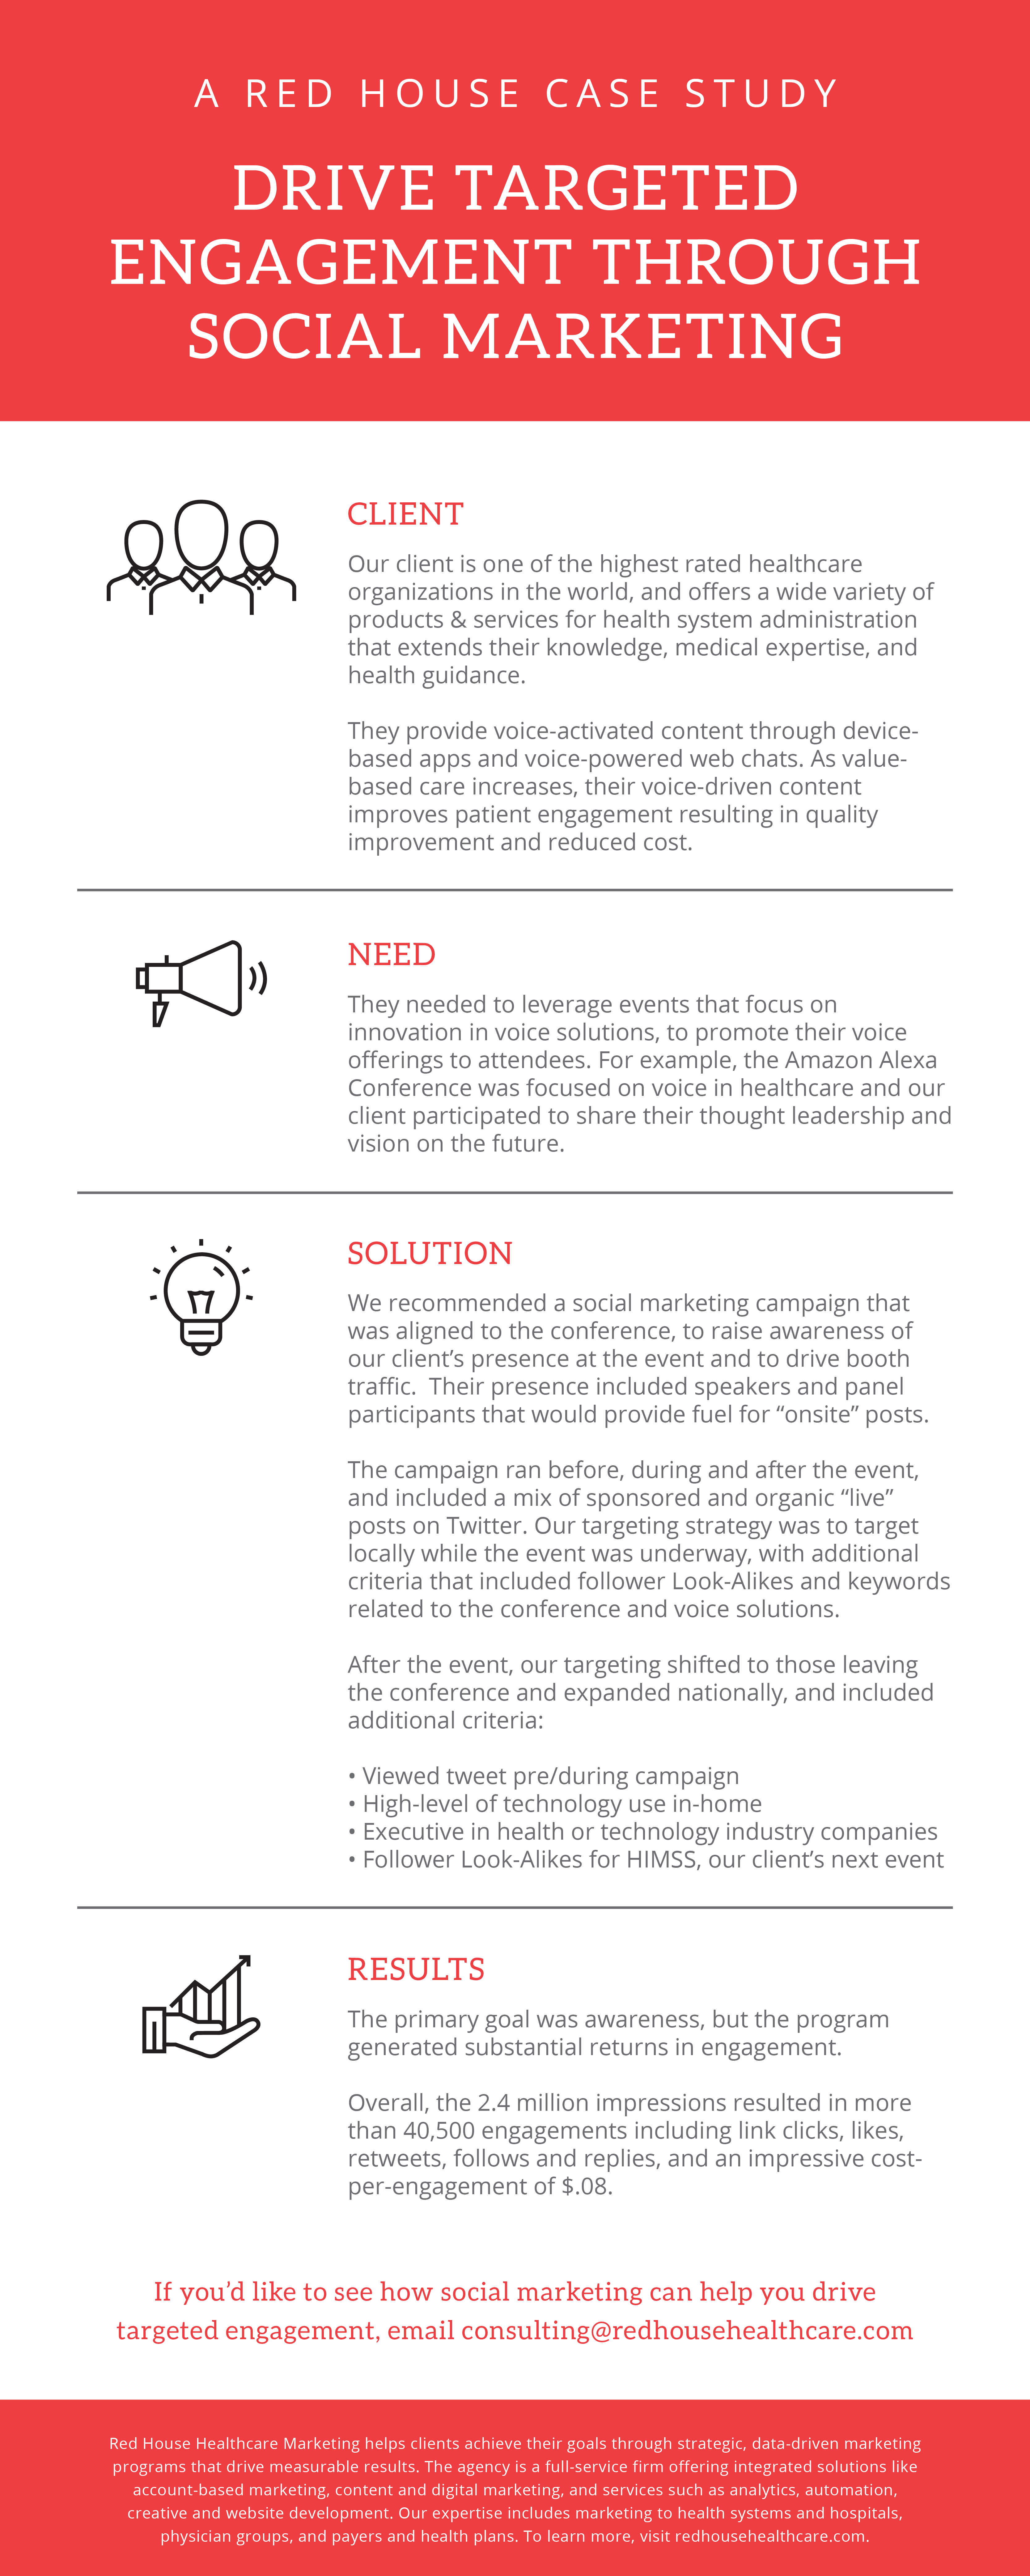 Case Study, Drive Targeted Engagement Through Social; case study infographic, case study infographic, Red House B2B Marketing, Red House Healthcare Marketing